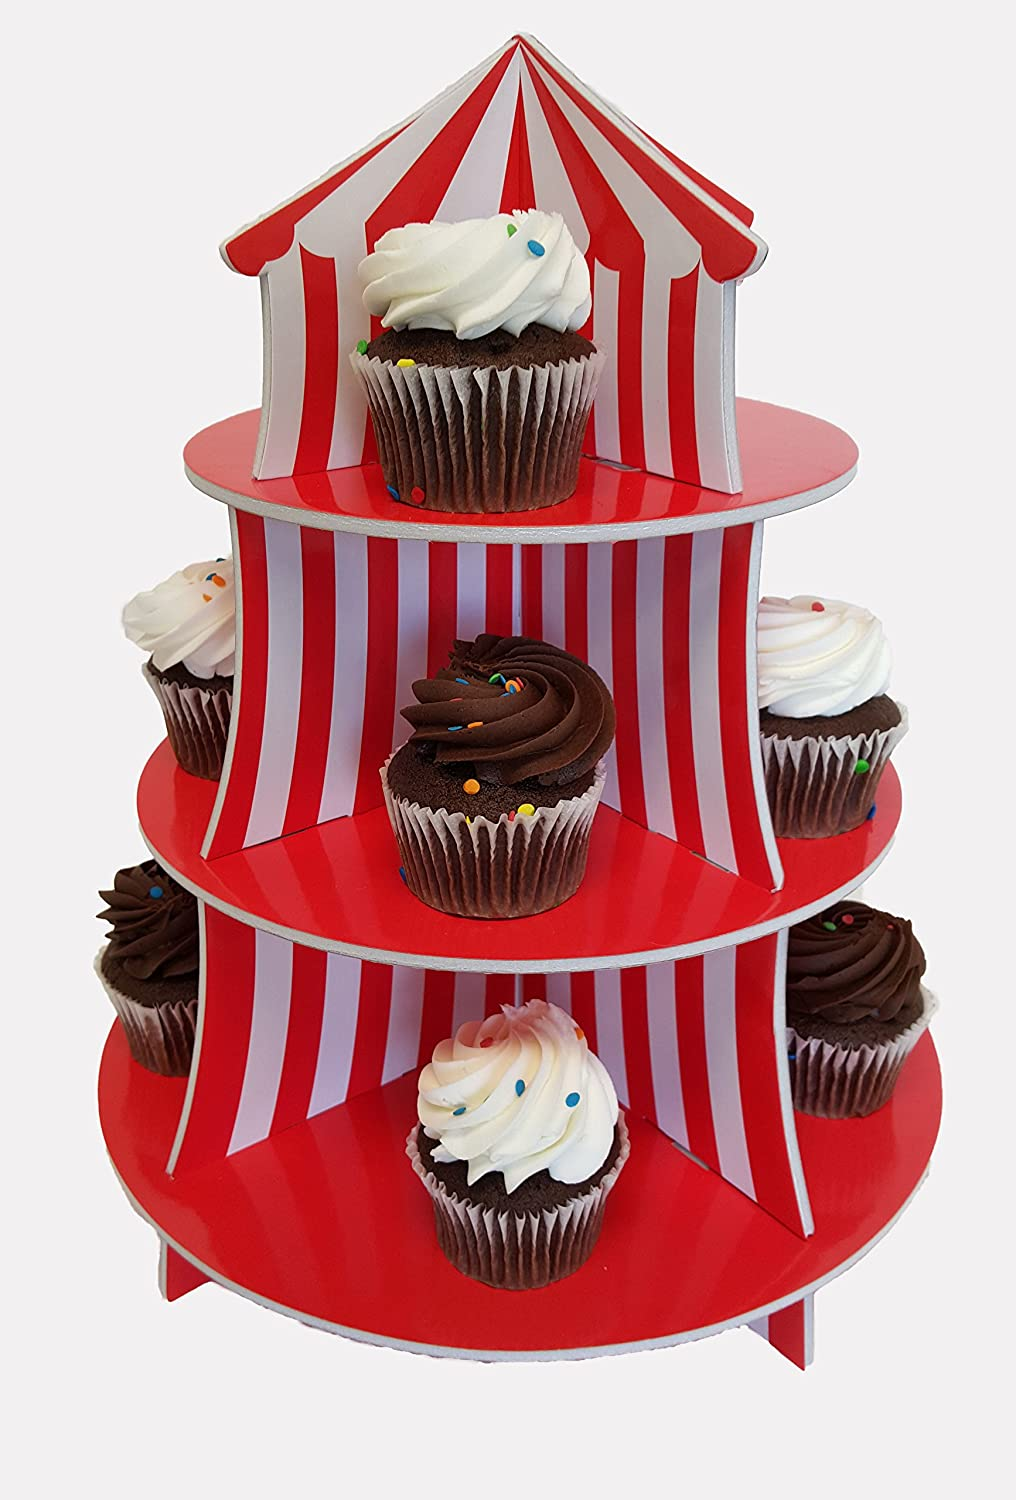 Cupcake Stand For Children's Parties, Big Top Cupcake Stand, 3 Tier Carnival, Circus Cupcake Stand